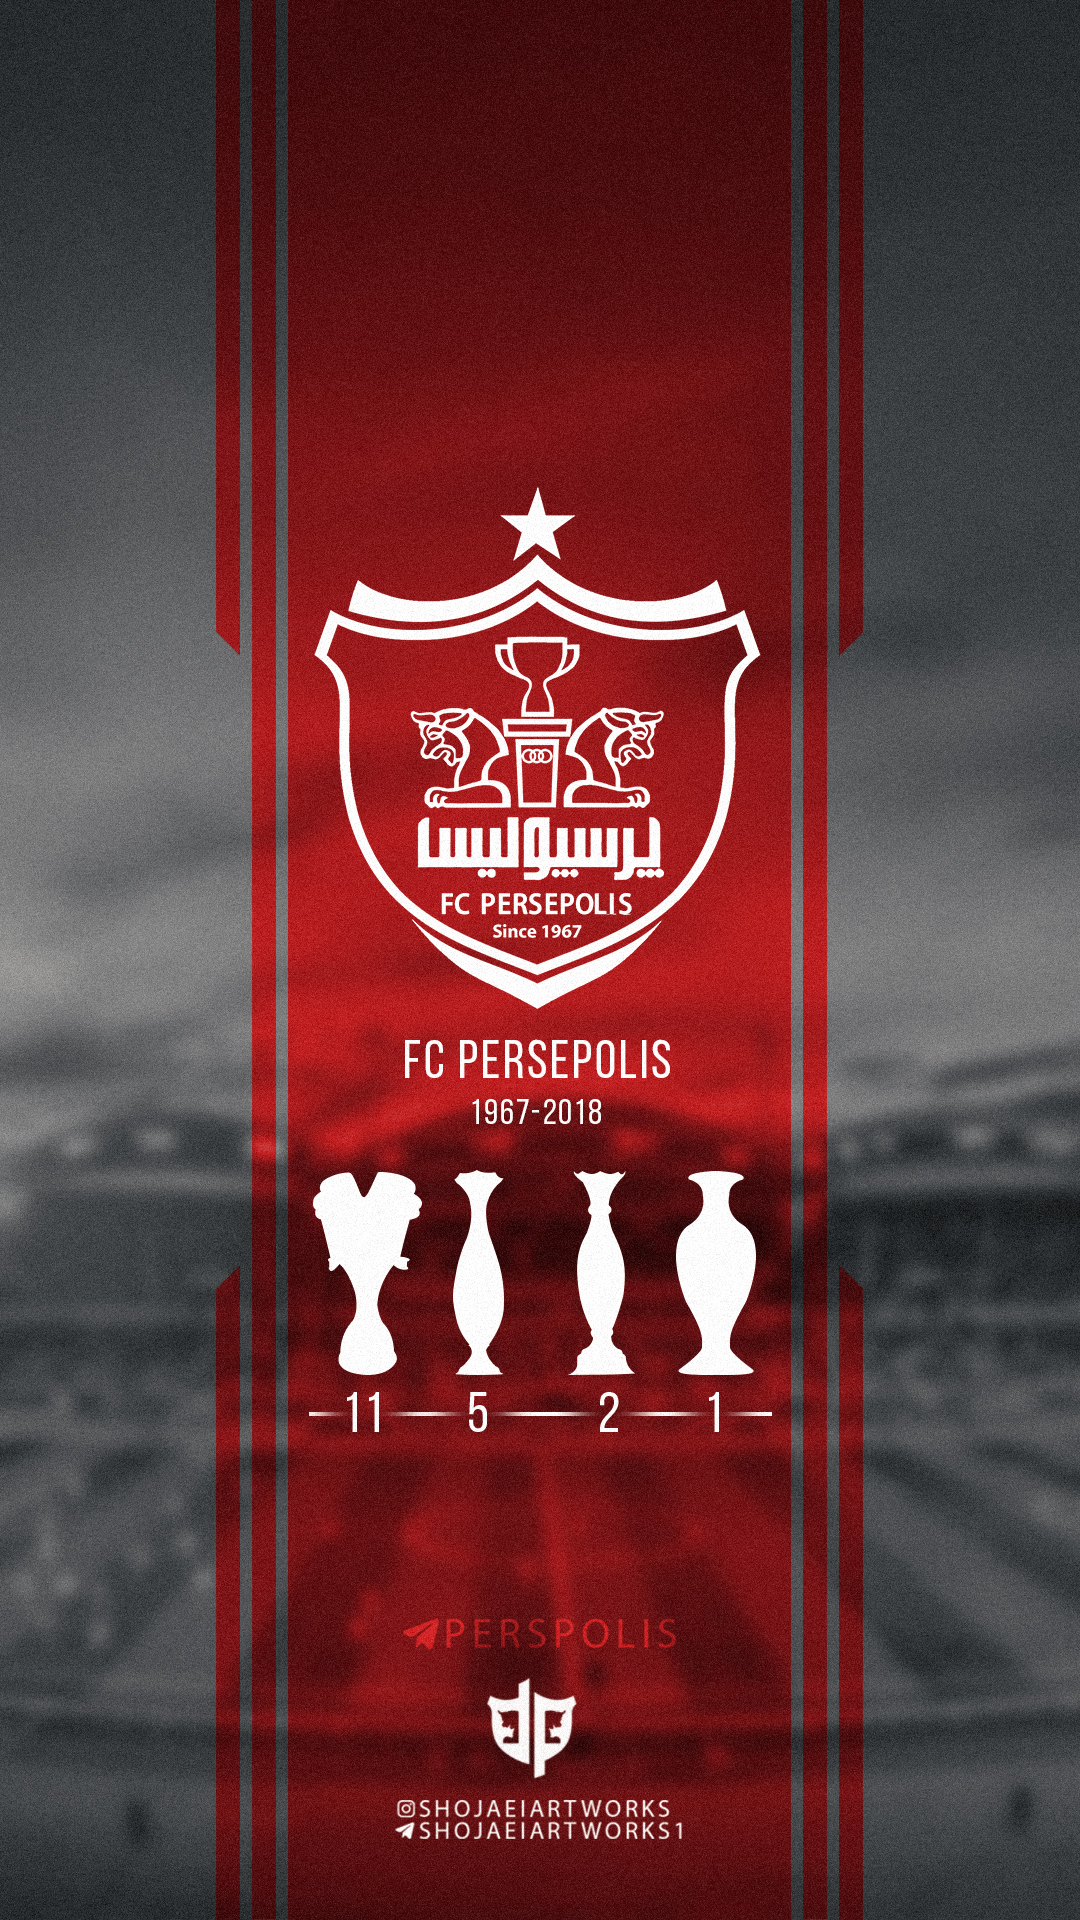 Sports Persepolis F C 1080x1920 Wallpaper Id 752586 Mobile Abyss